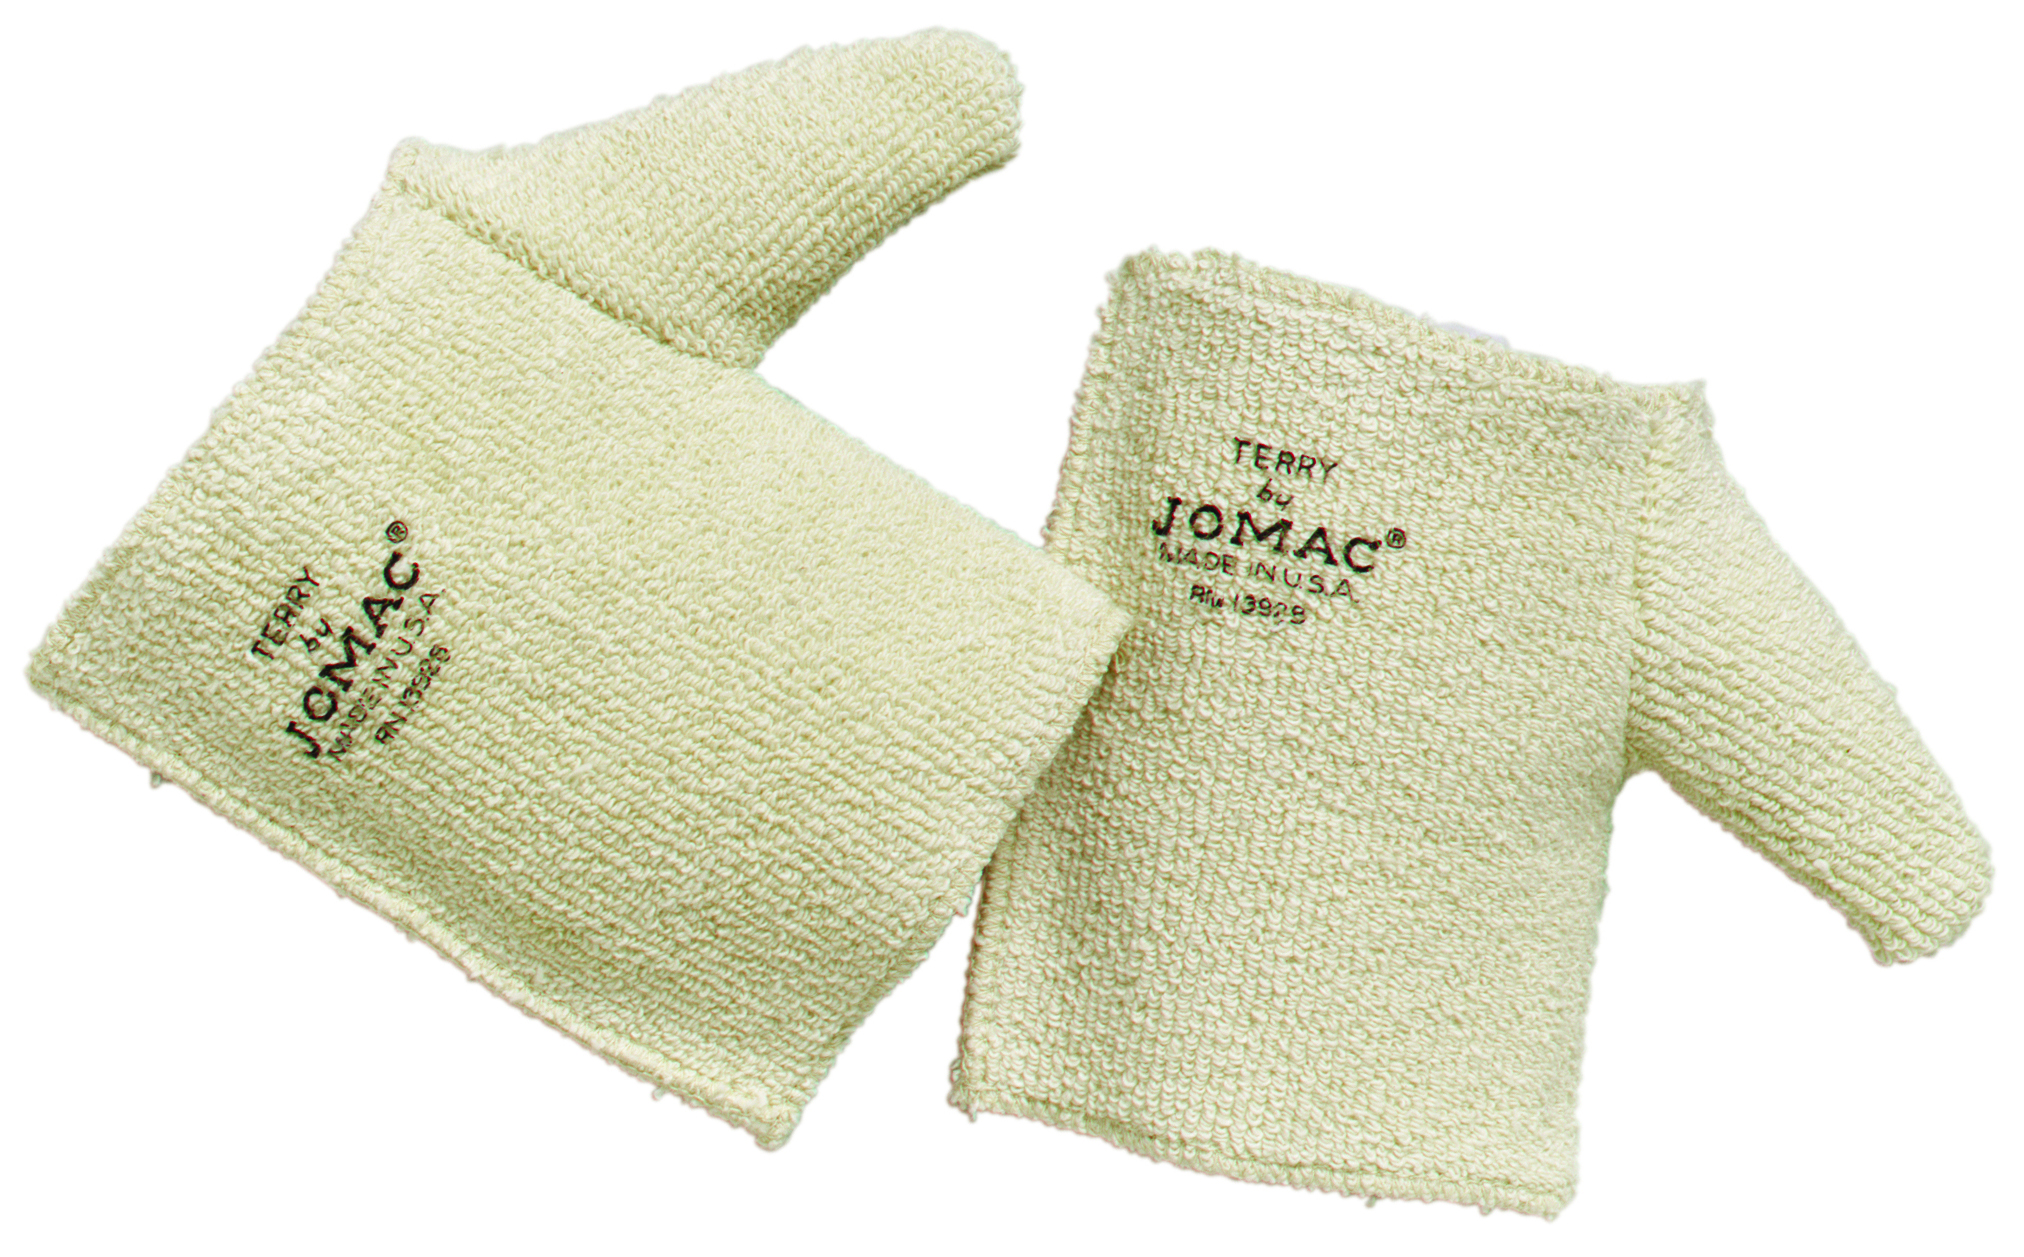 H-183 - Jomac® Extra Heavy Weight Terry Cloth Pads-Heat Resistant Gloves-Jomac® Extra Heavy Weight Terry Cloth Pads-10